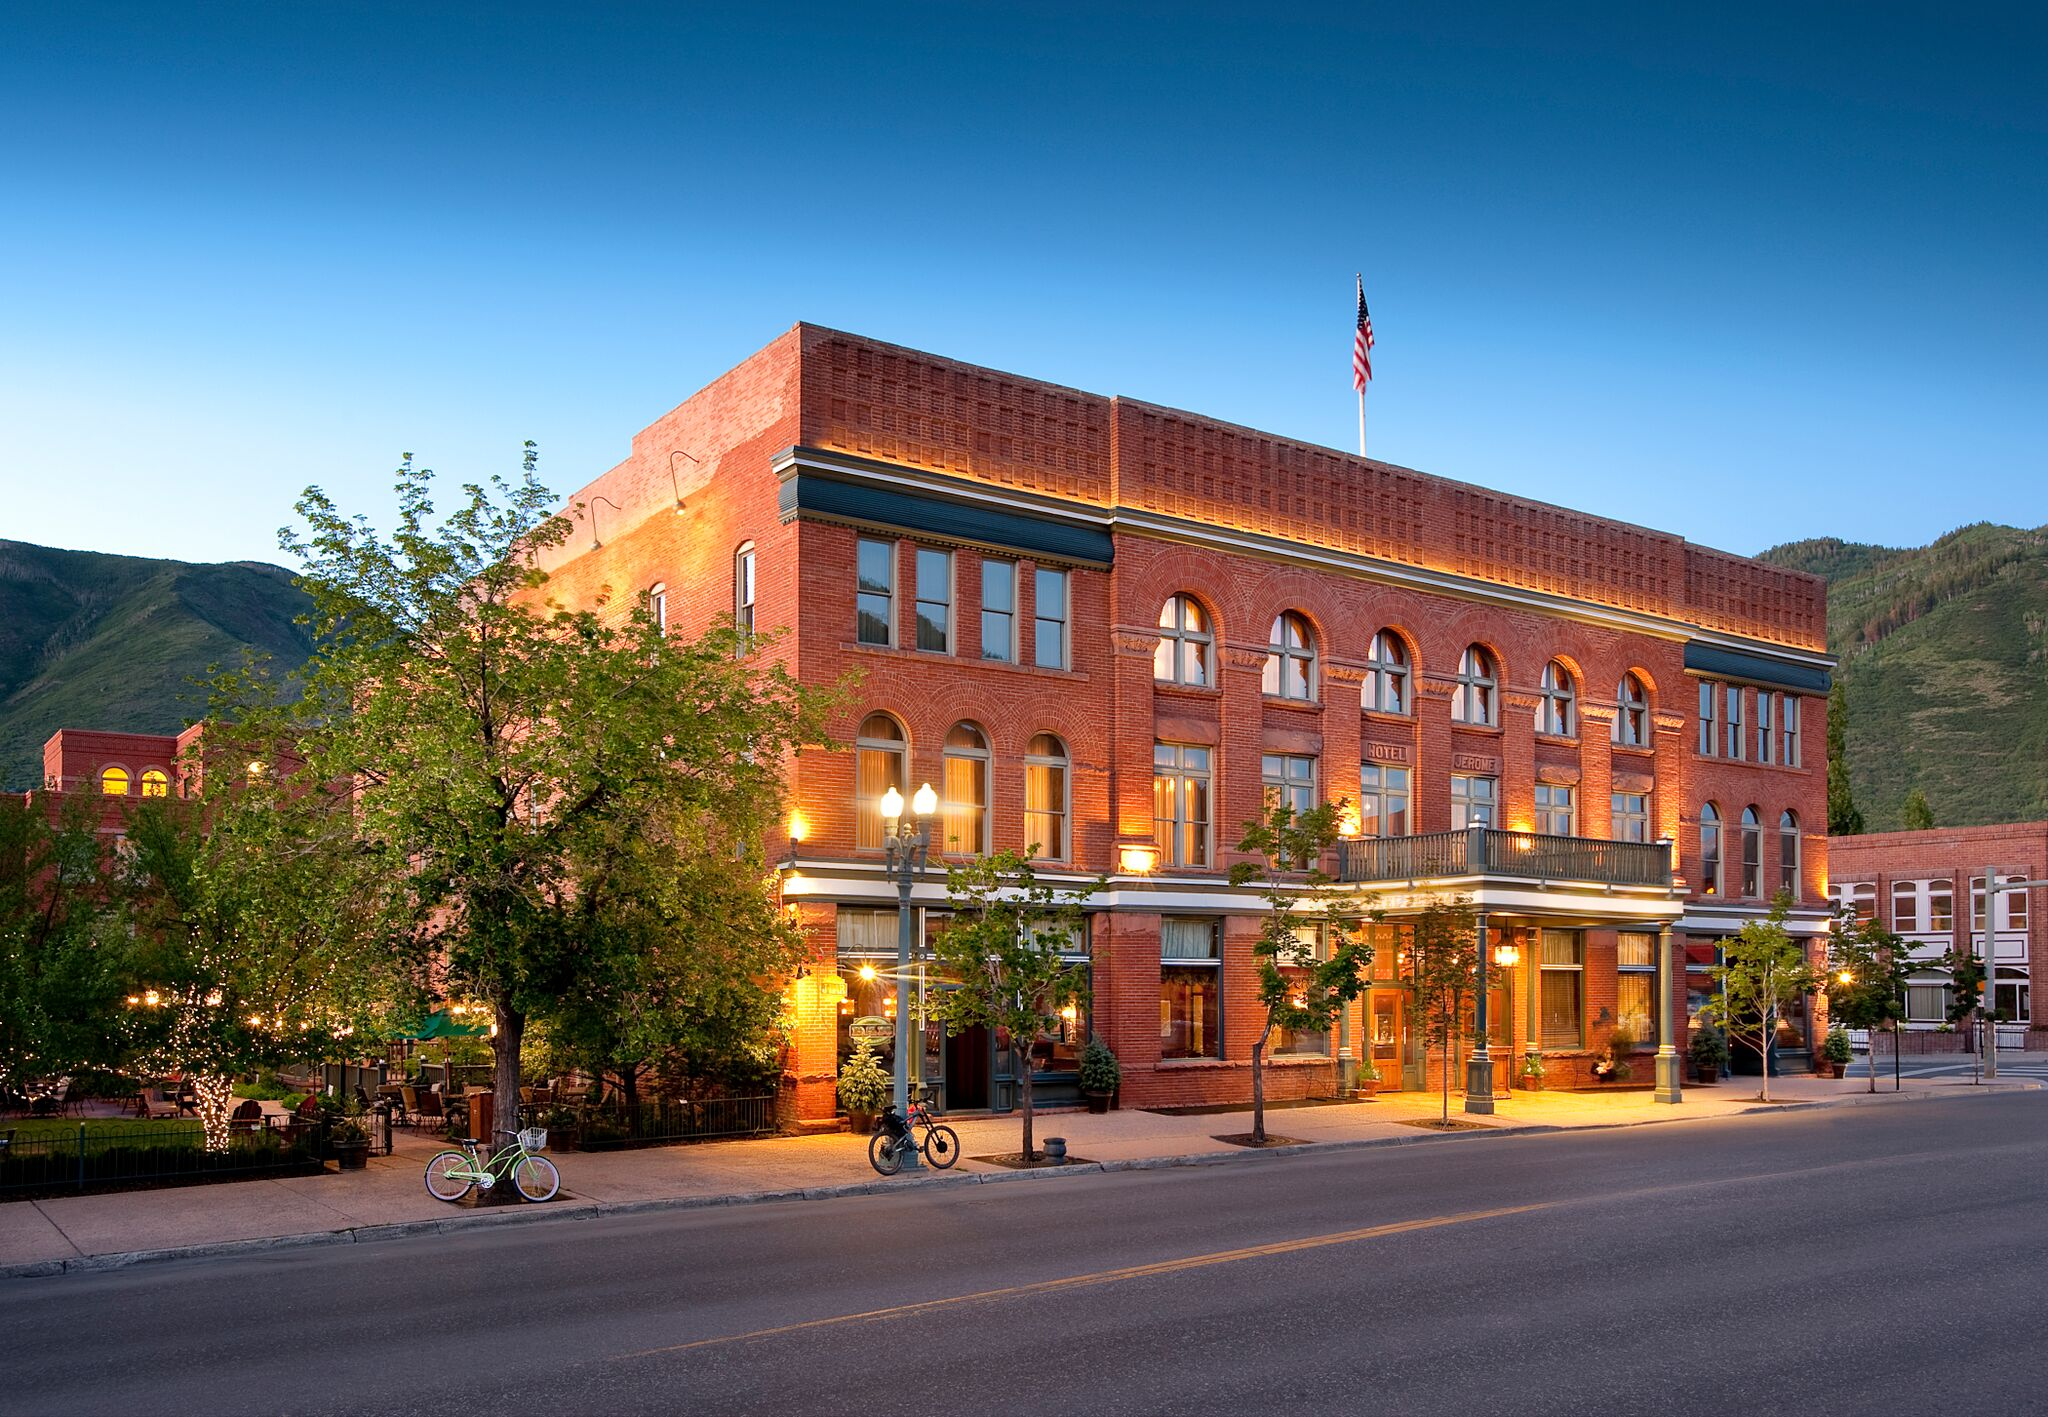 Aspen restaurants, where to eat in Aspen, About Time: You Discovered Aspen in the Summer, best things to do in Aspen during the summer, best things to do in Aspen, Aspen during the summer, Aspen in the summer